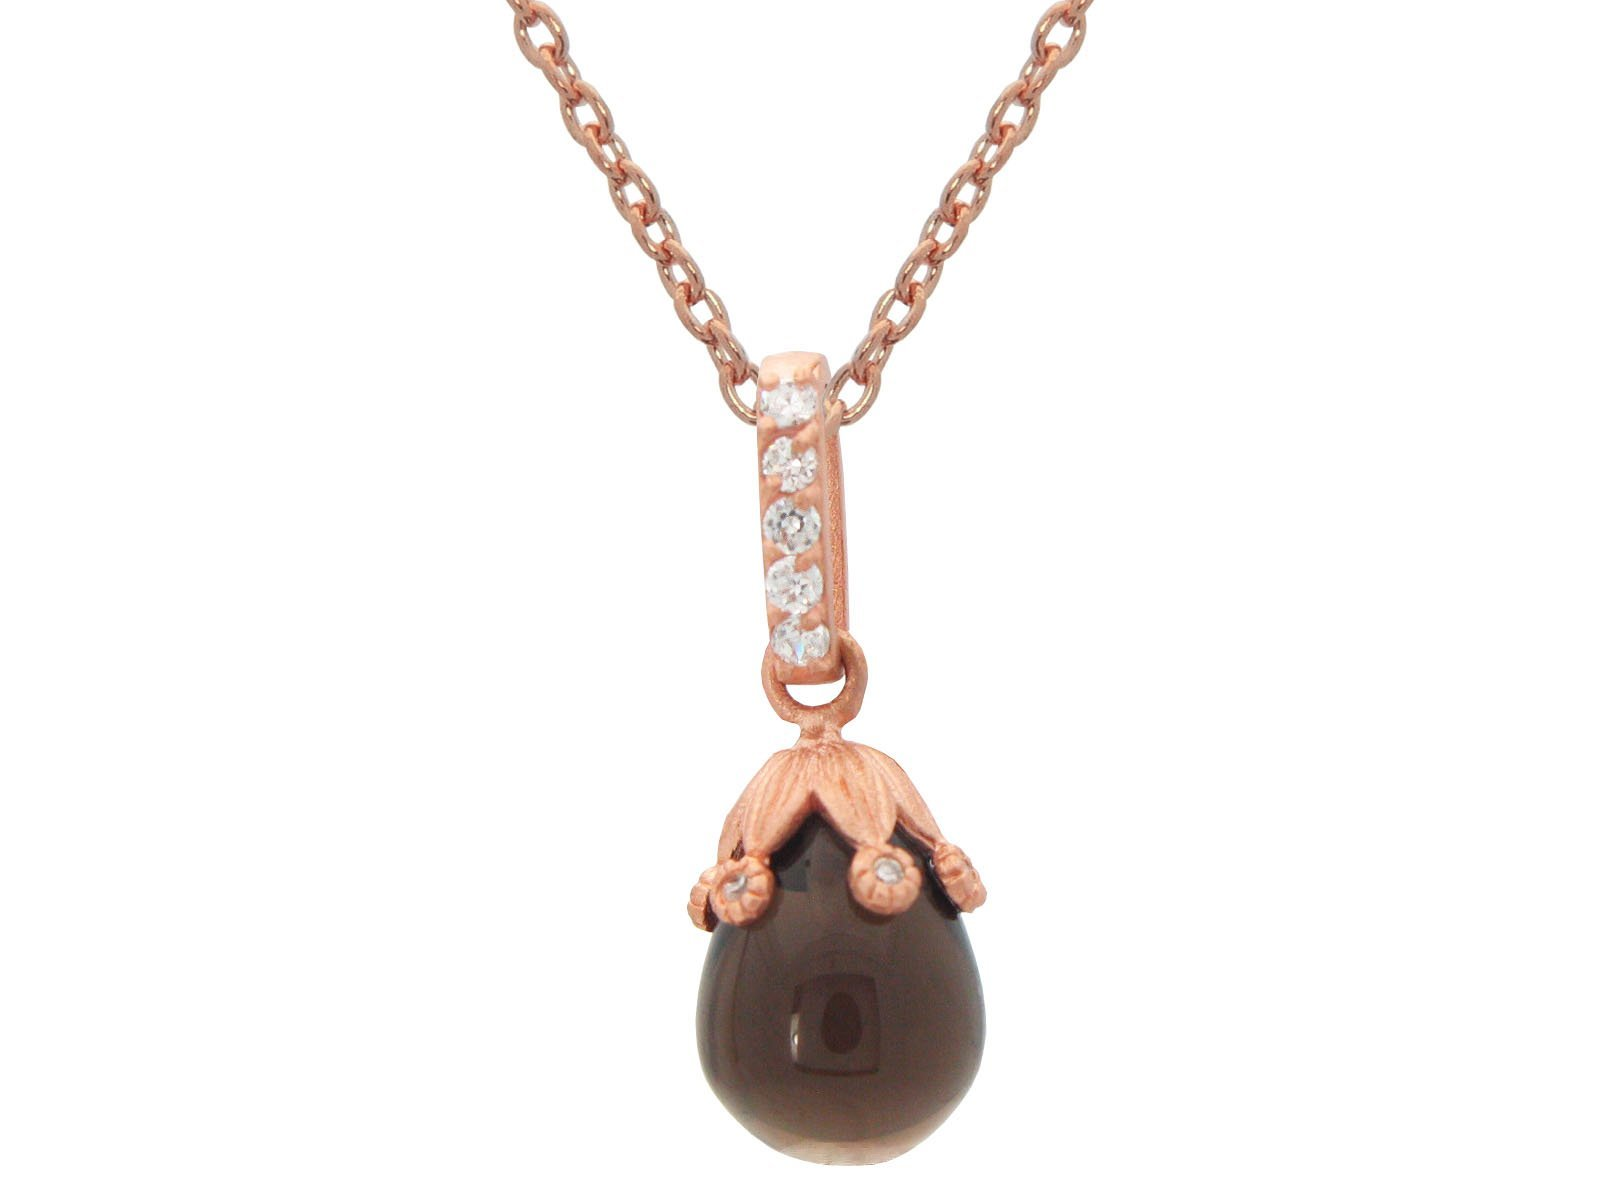 Black Flower Bulb Pendant Necklace In Rose Gold Plated Silver